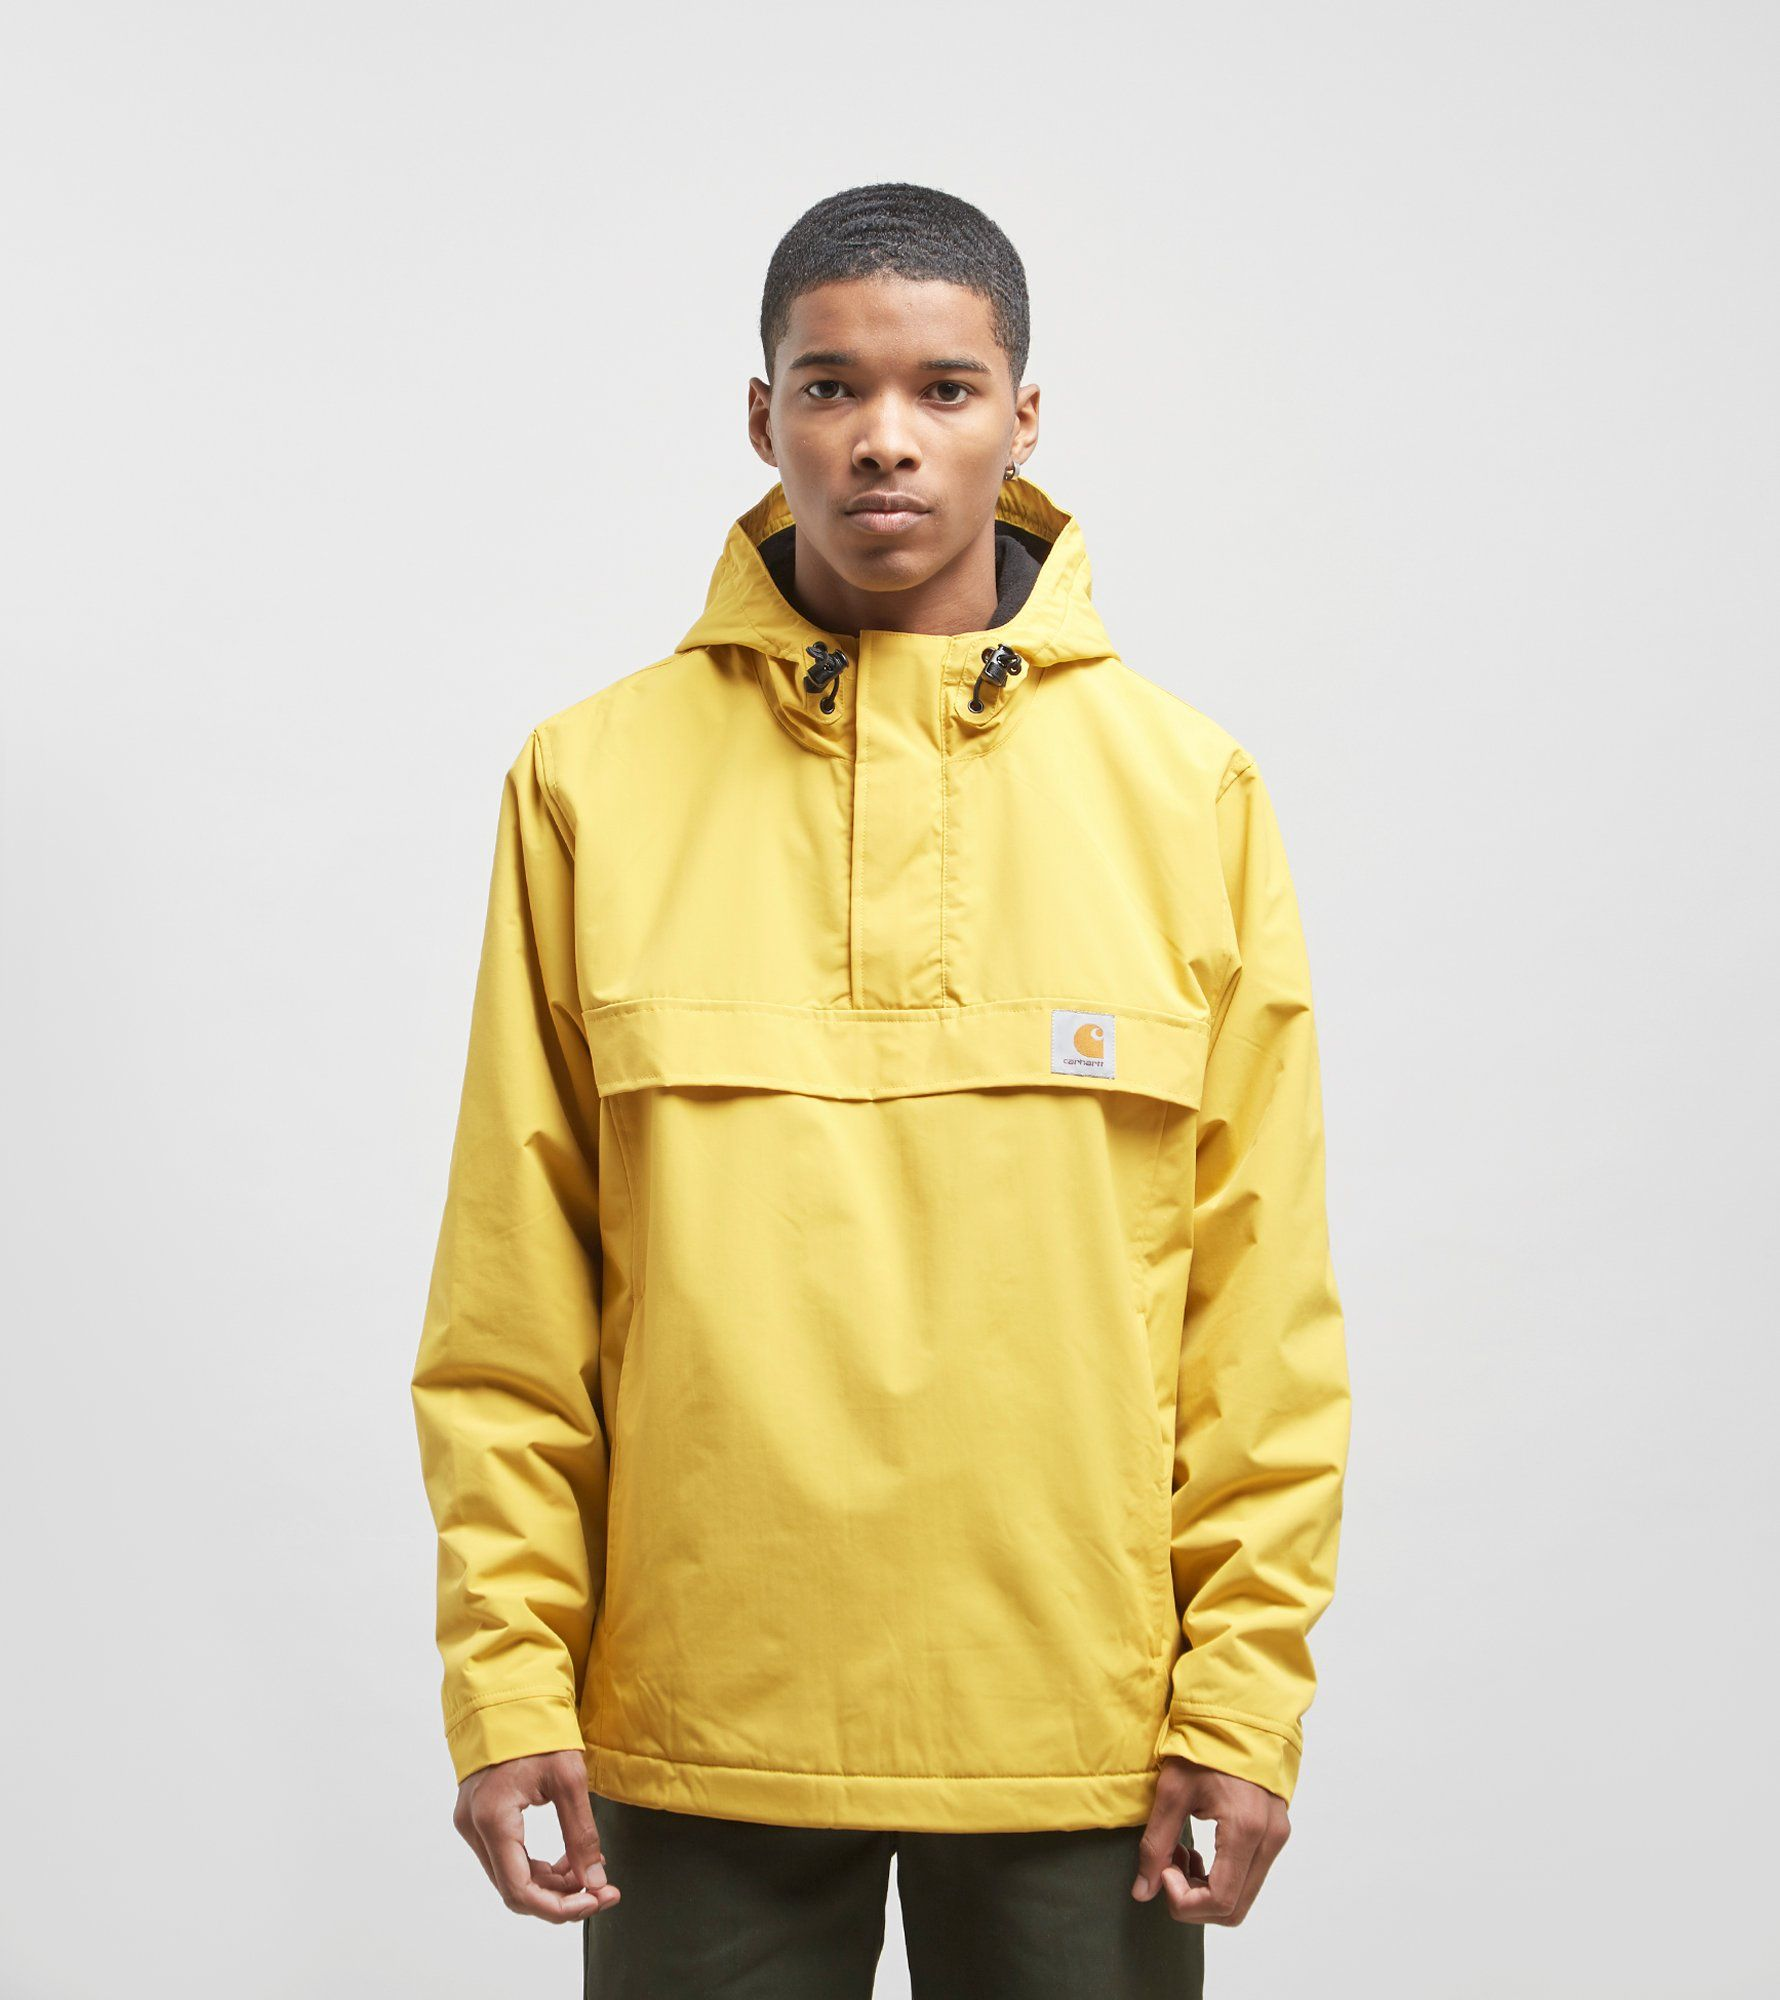 Carhartt Wip Nimbus Jacket   Size? Exclusive by Carhartt Wip